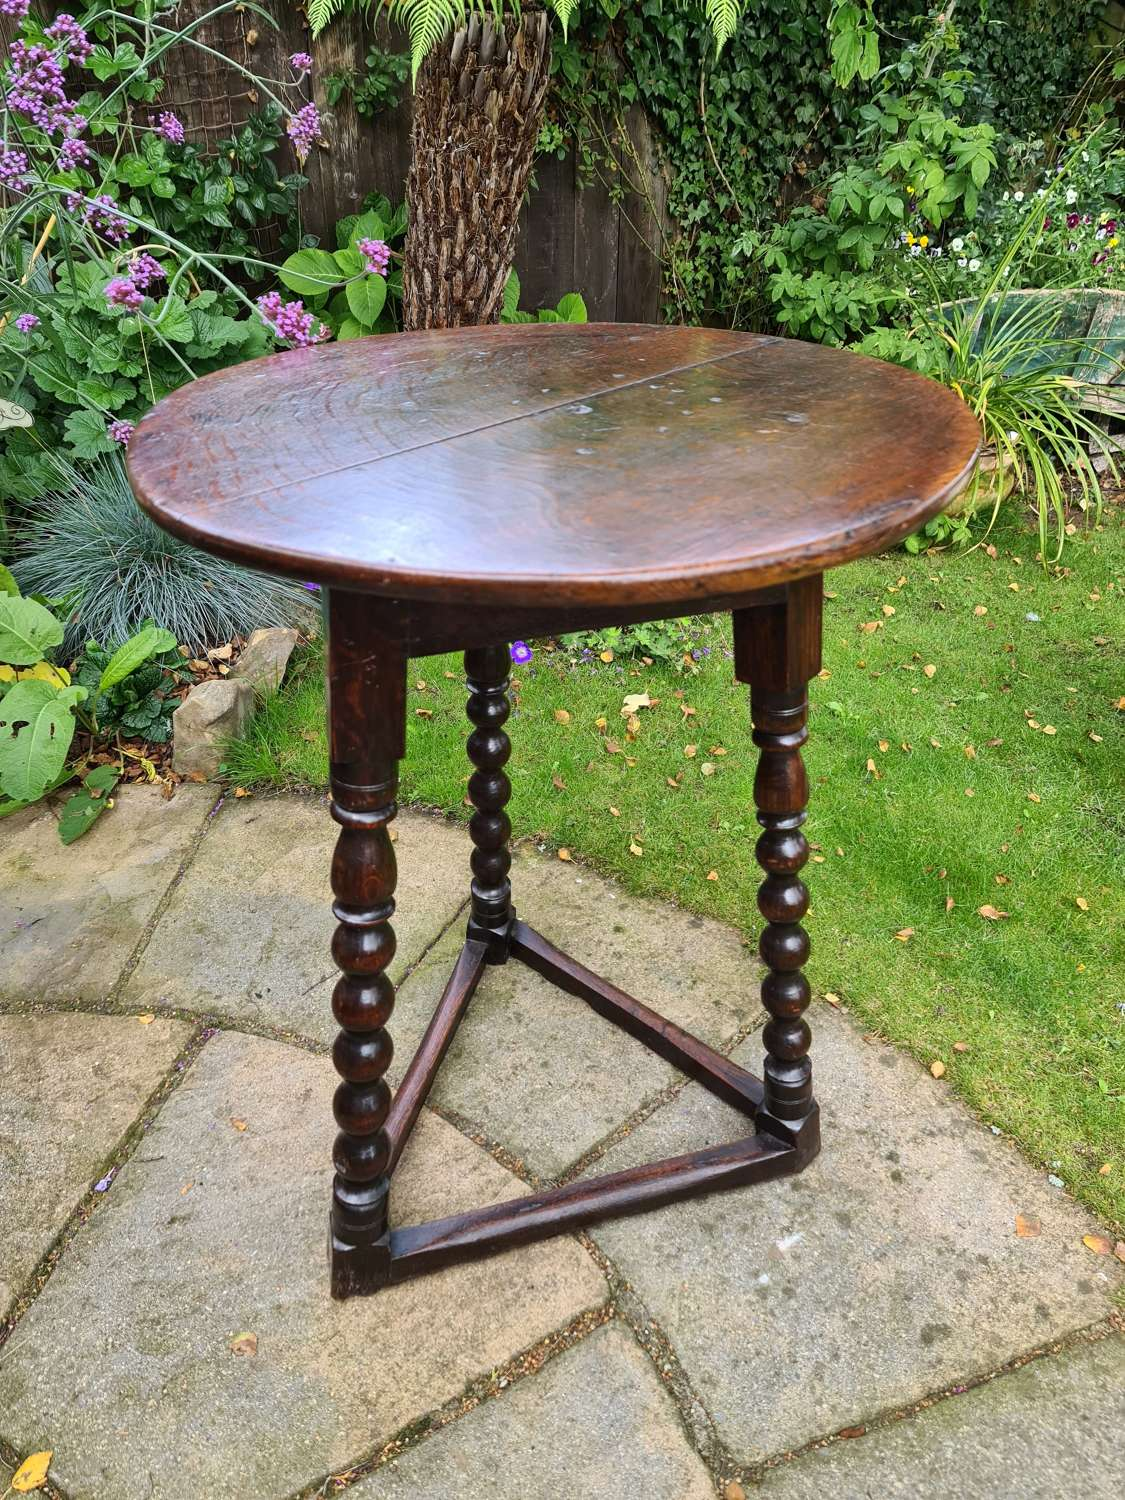 Outstanding Example of an 18th c. Oak Cricket Table